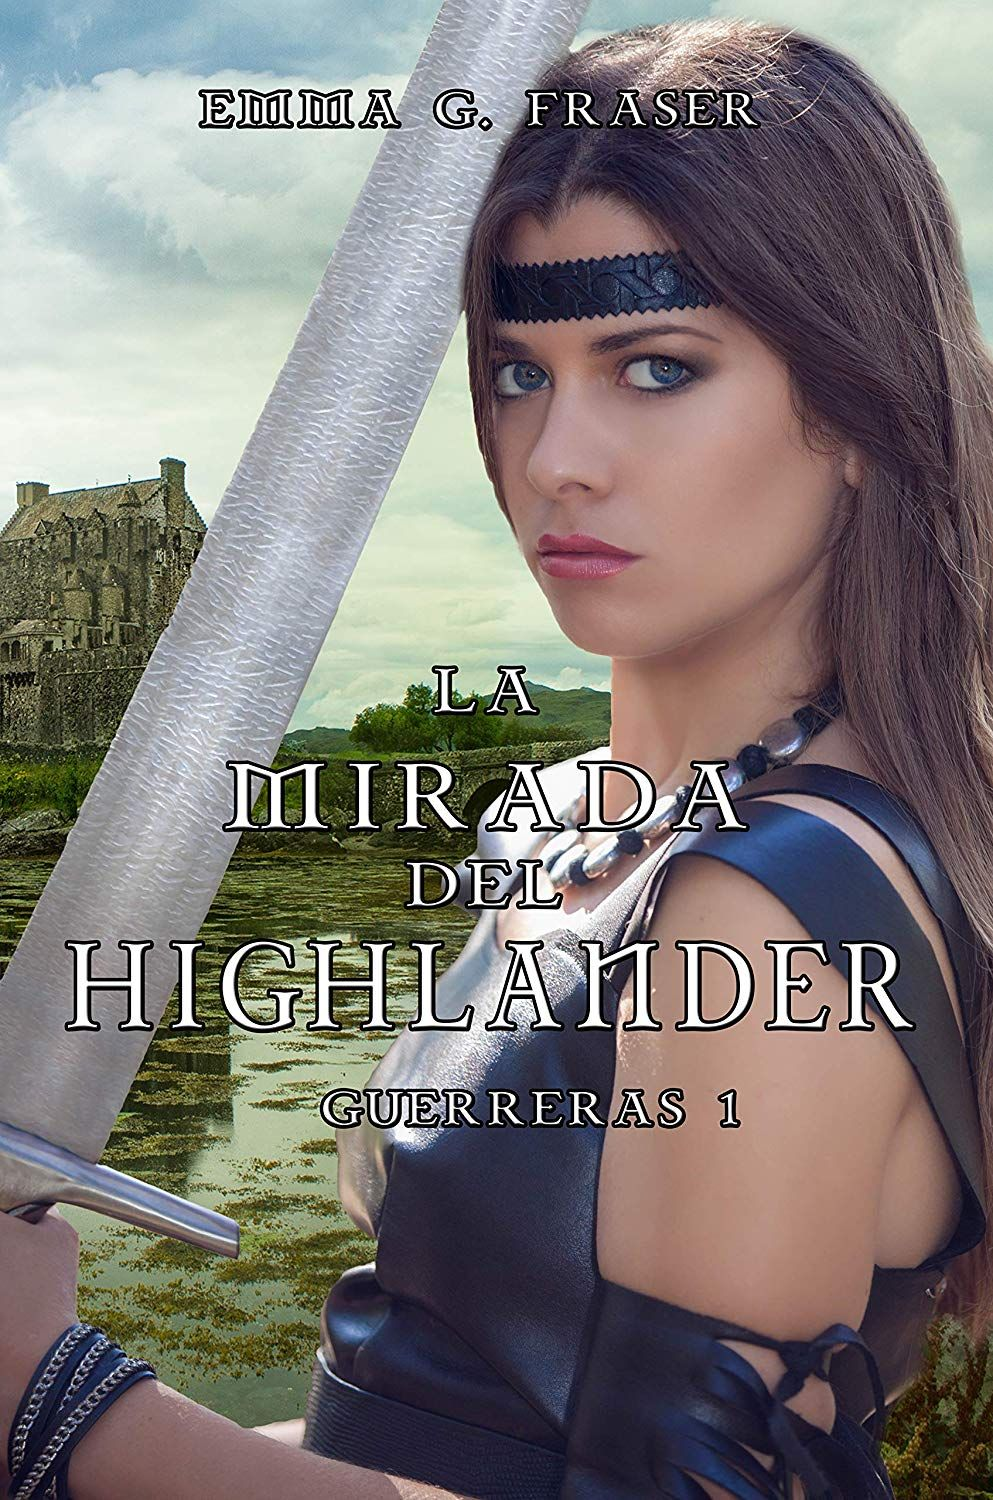 La mirada del highlander (Guerreras nº 1) eBook: Emma G. Fraser: Amazon.es:  Tienda Kindle